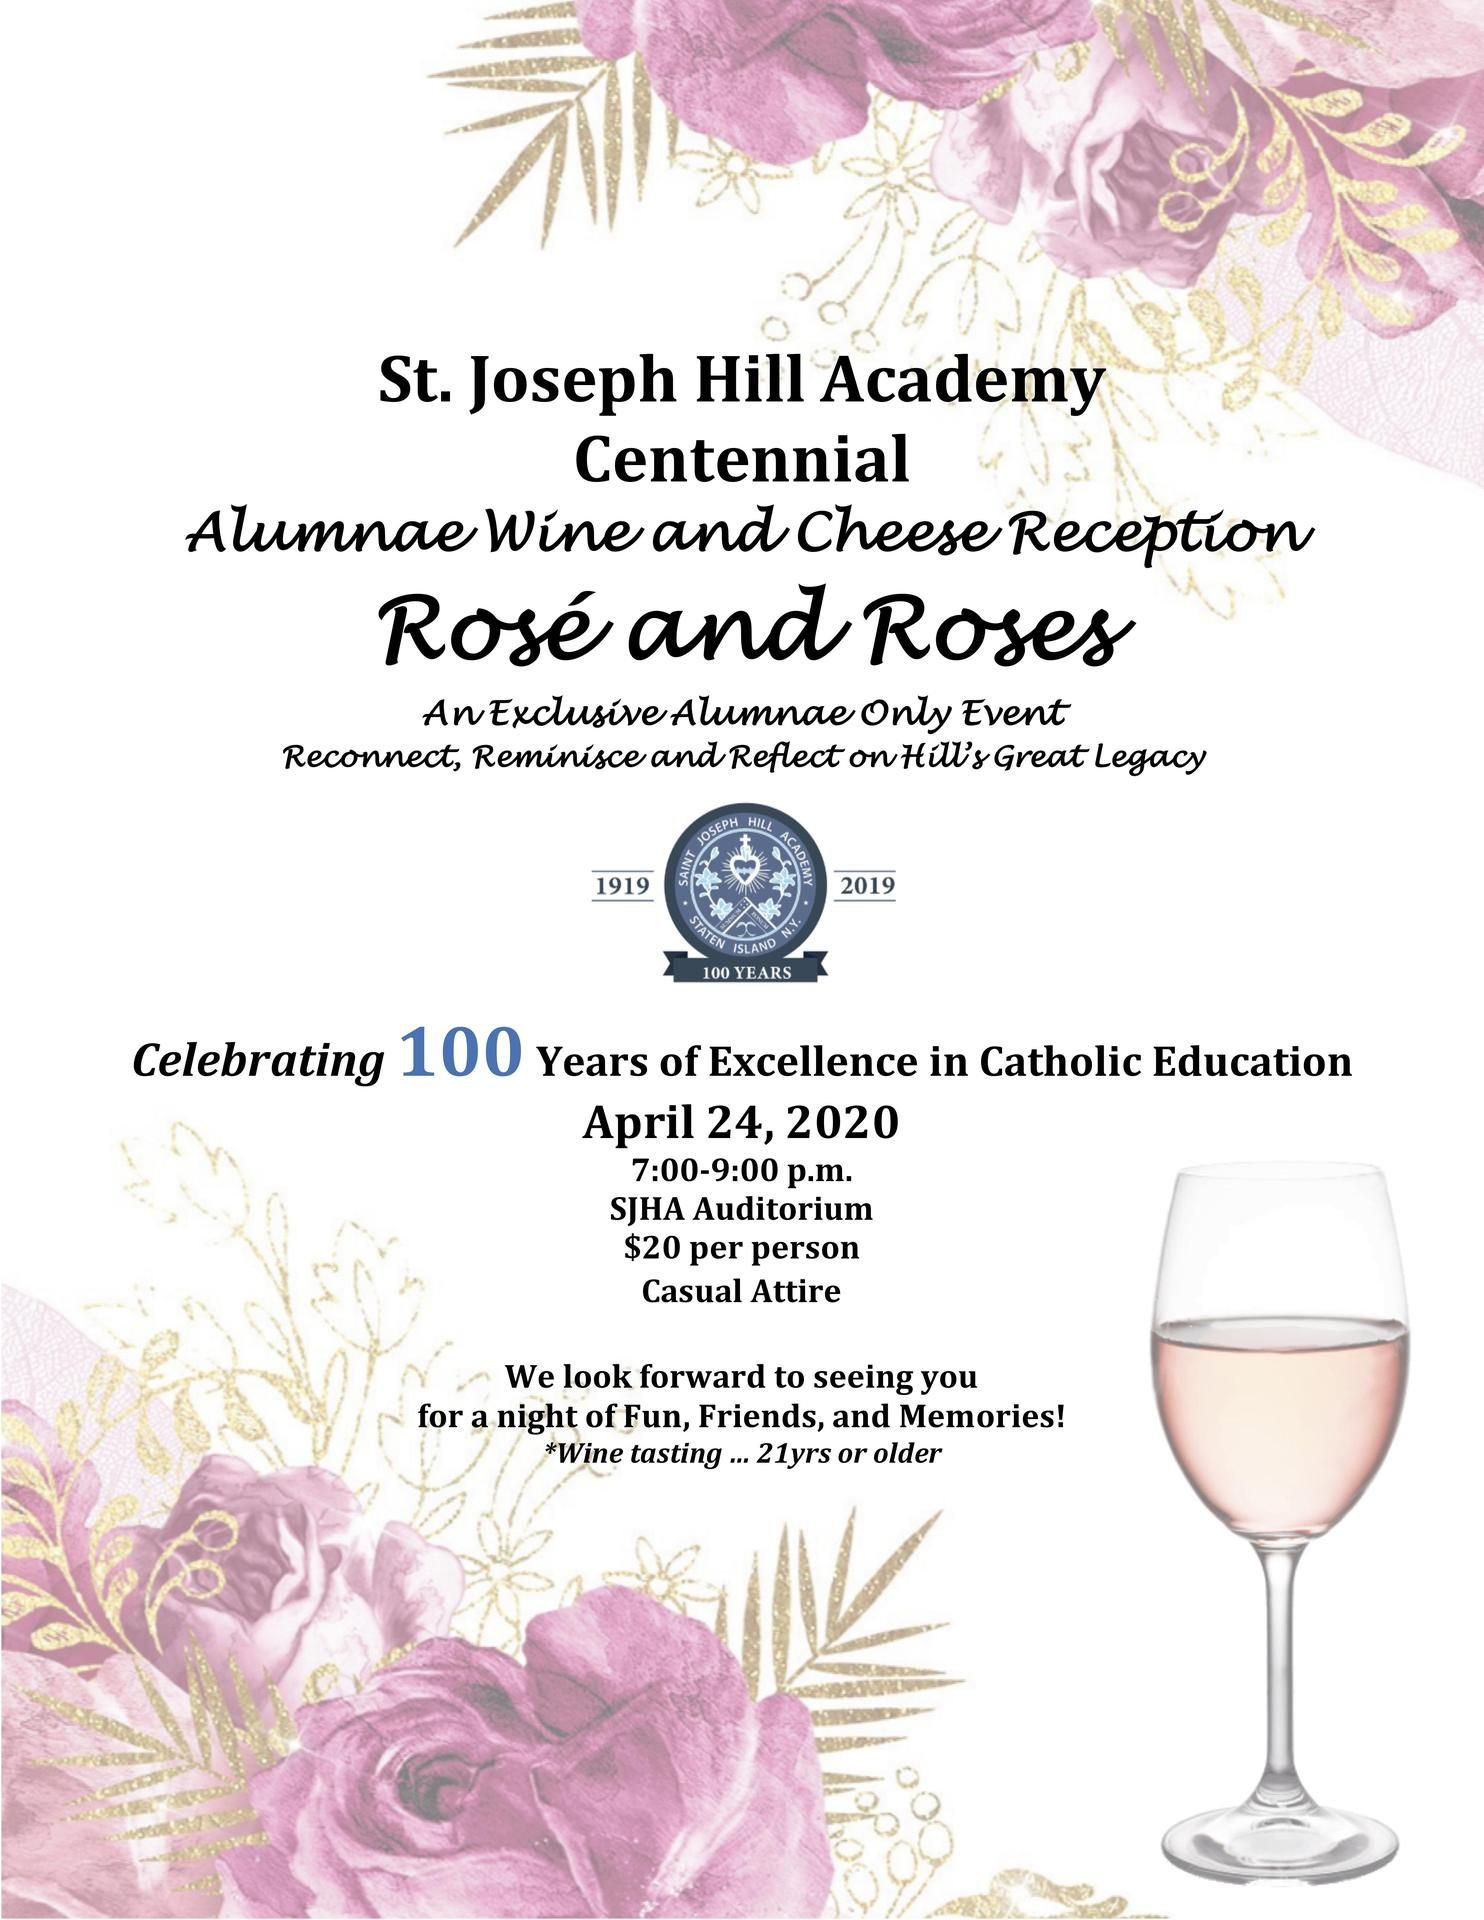 Alumnae Wine and Cheese Reception